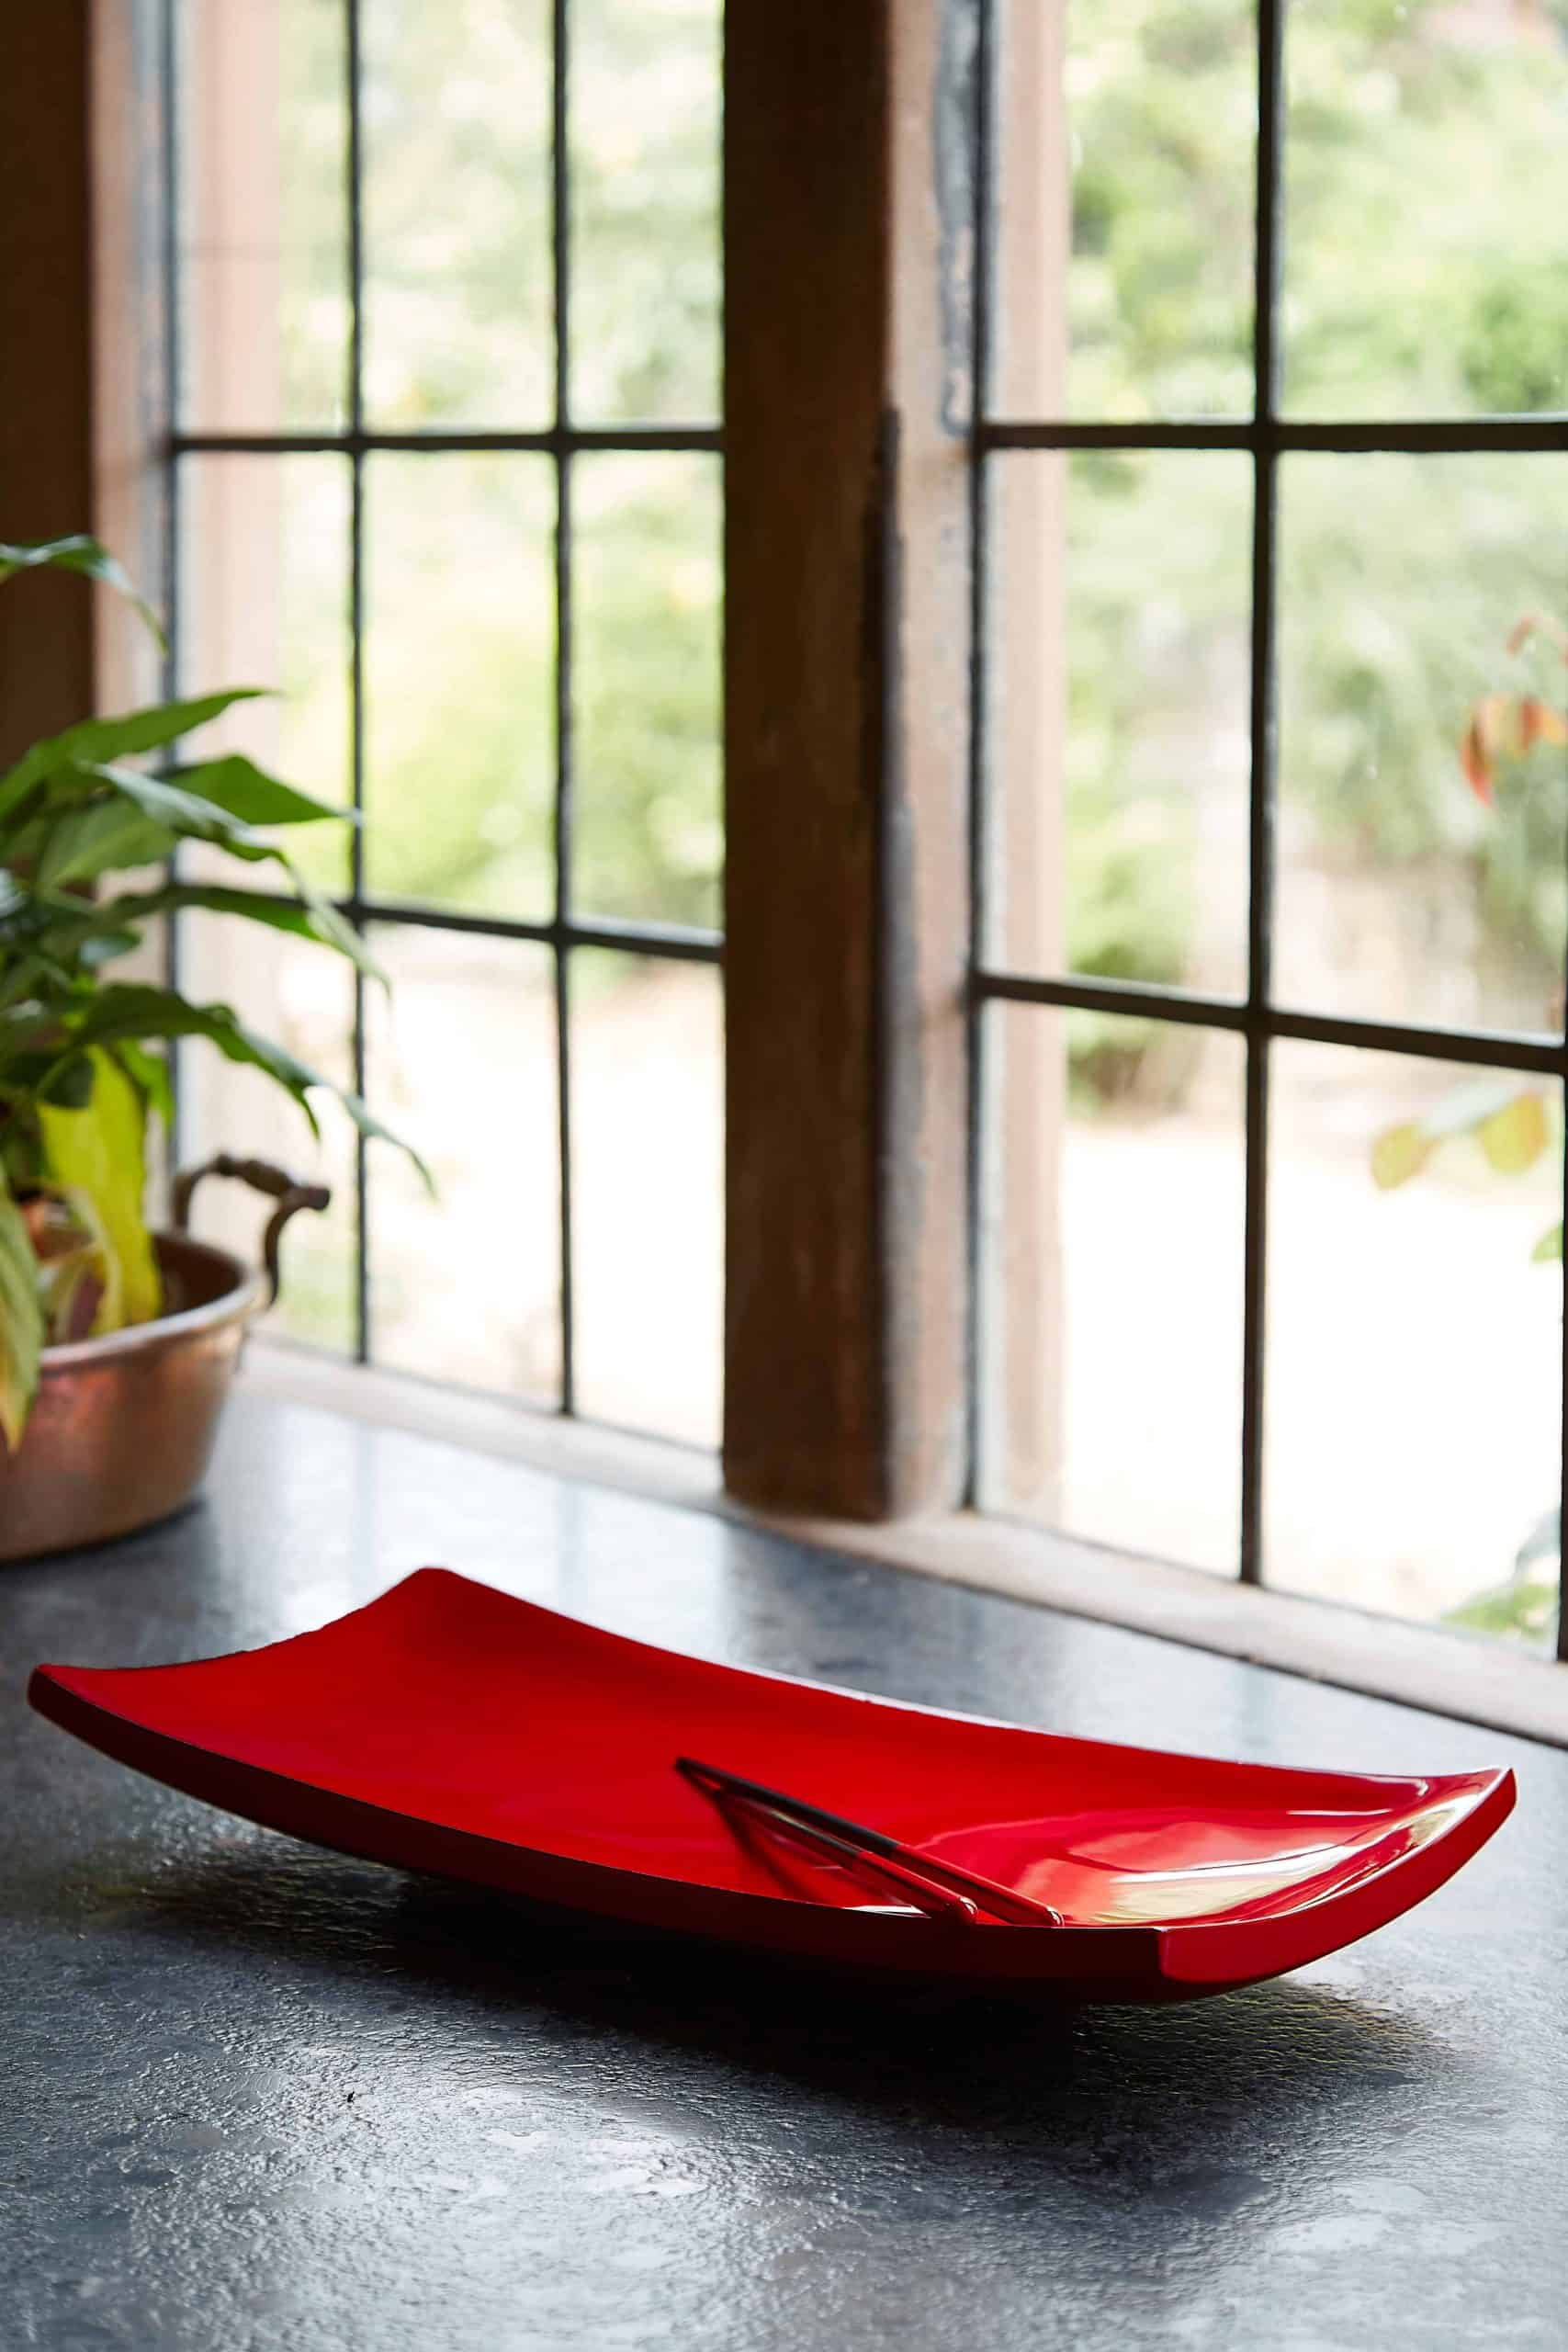 Red sushi lacquer plate